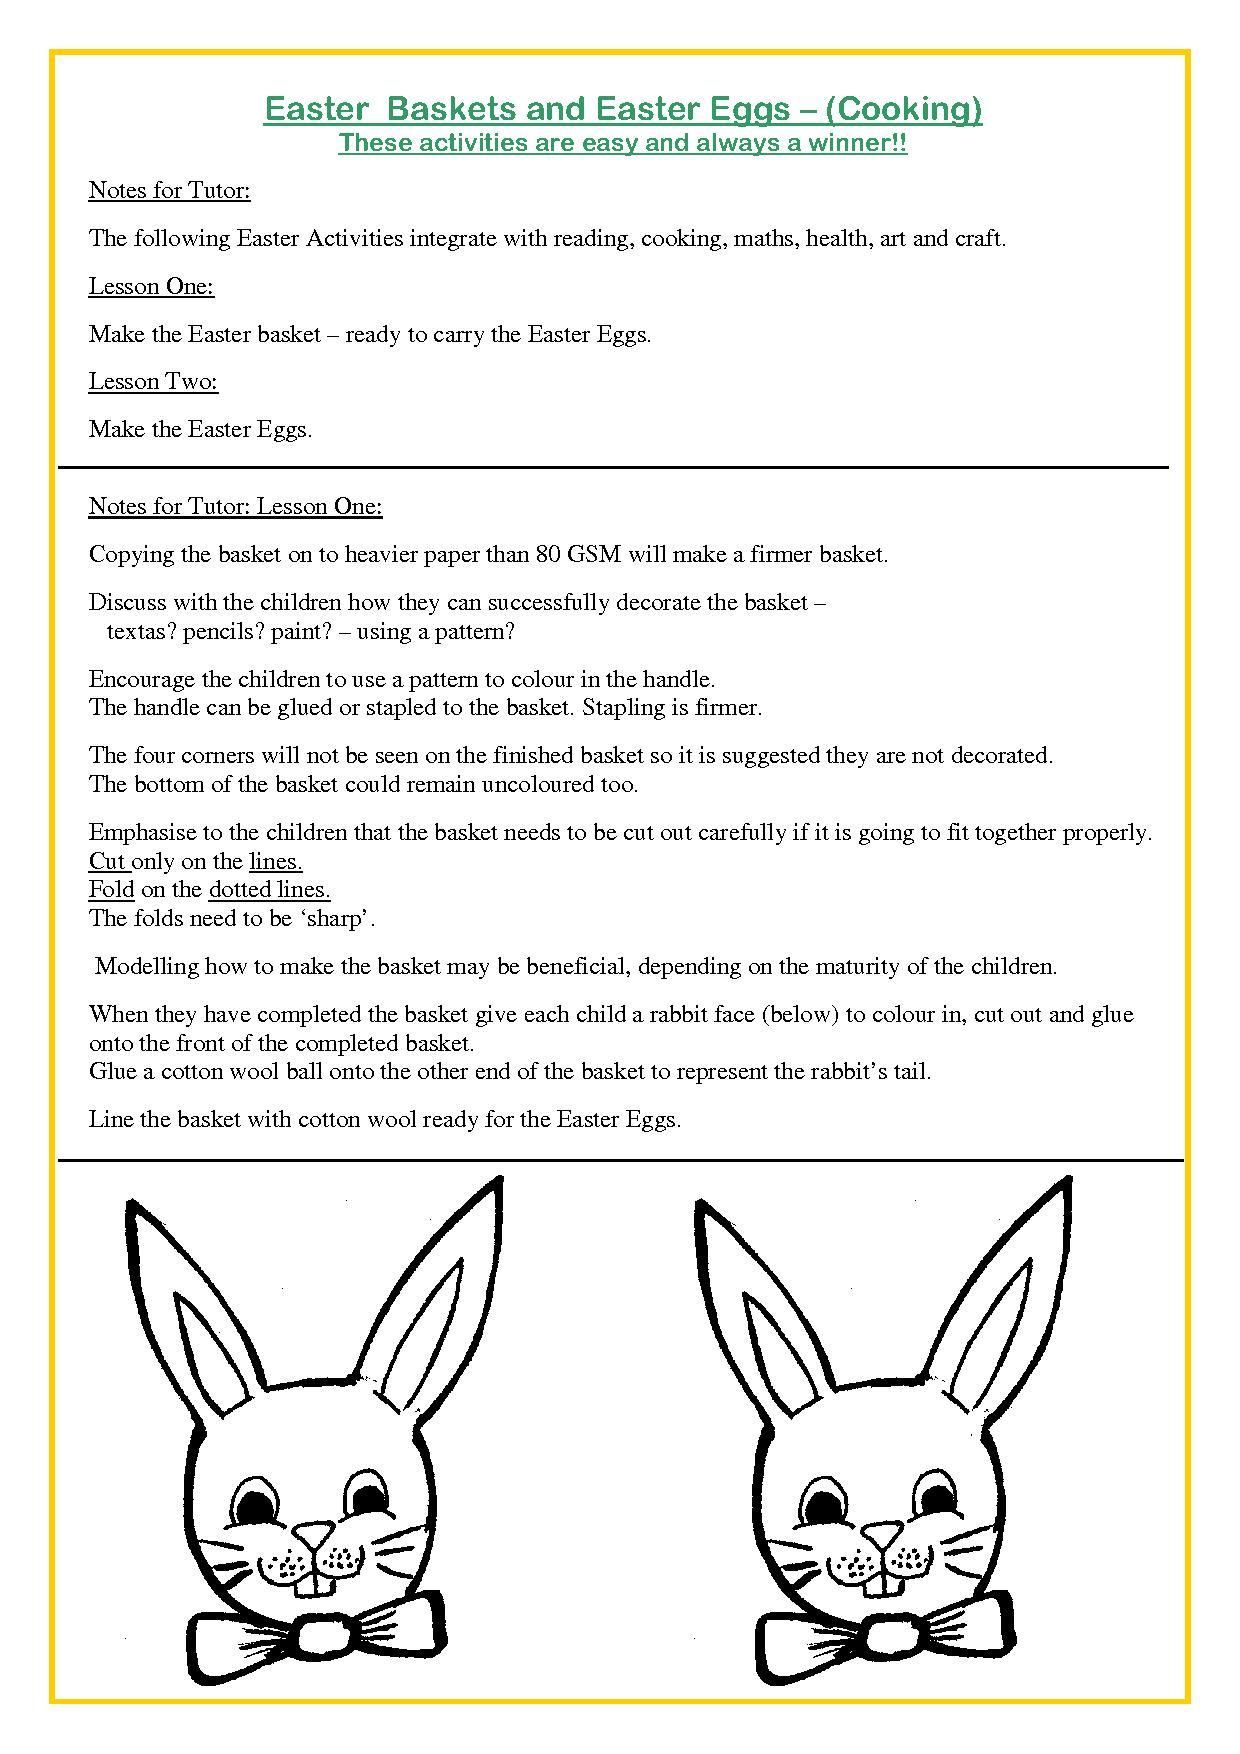 Easter Activities For Preschoolers In Nyc With Images